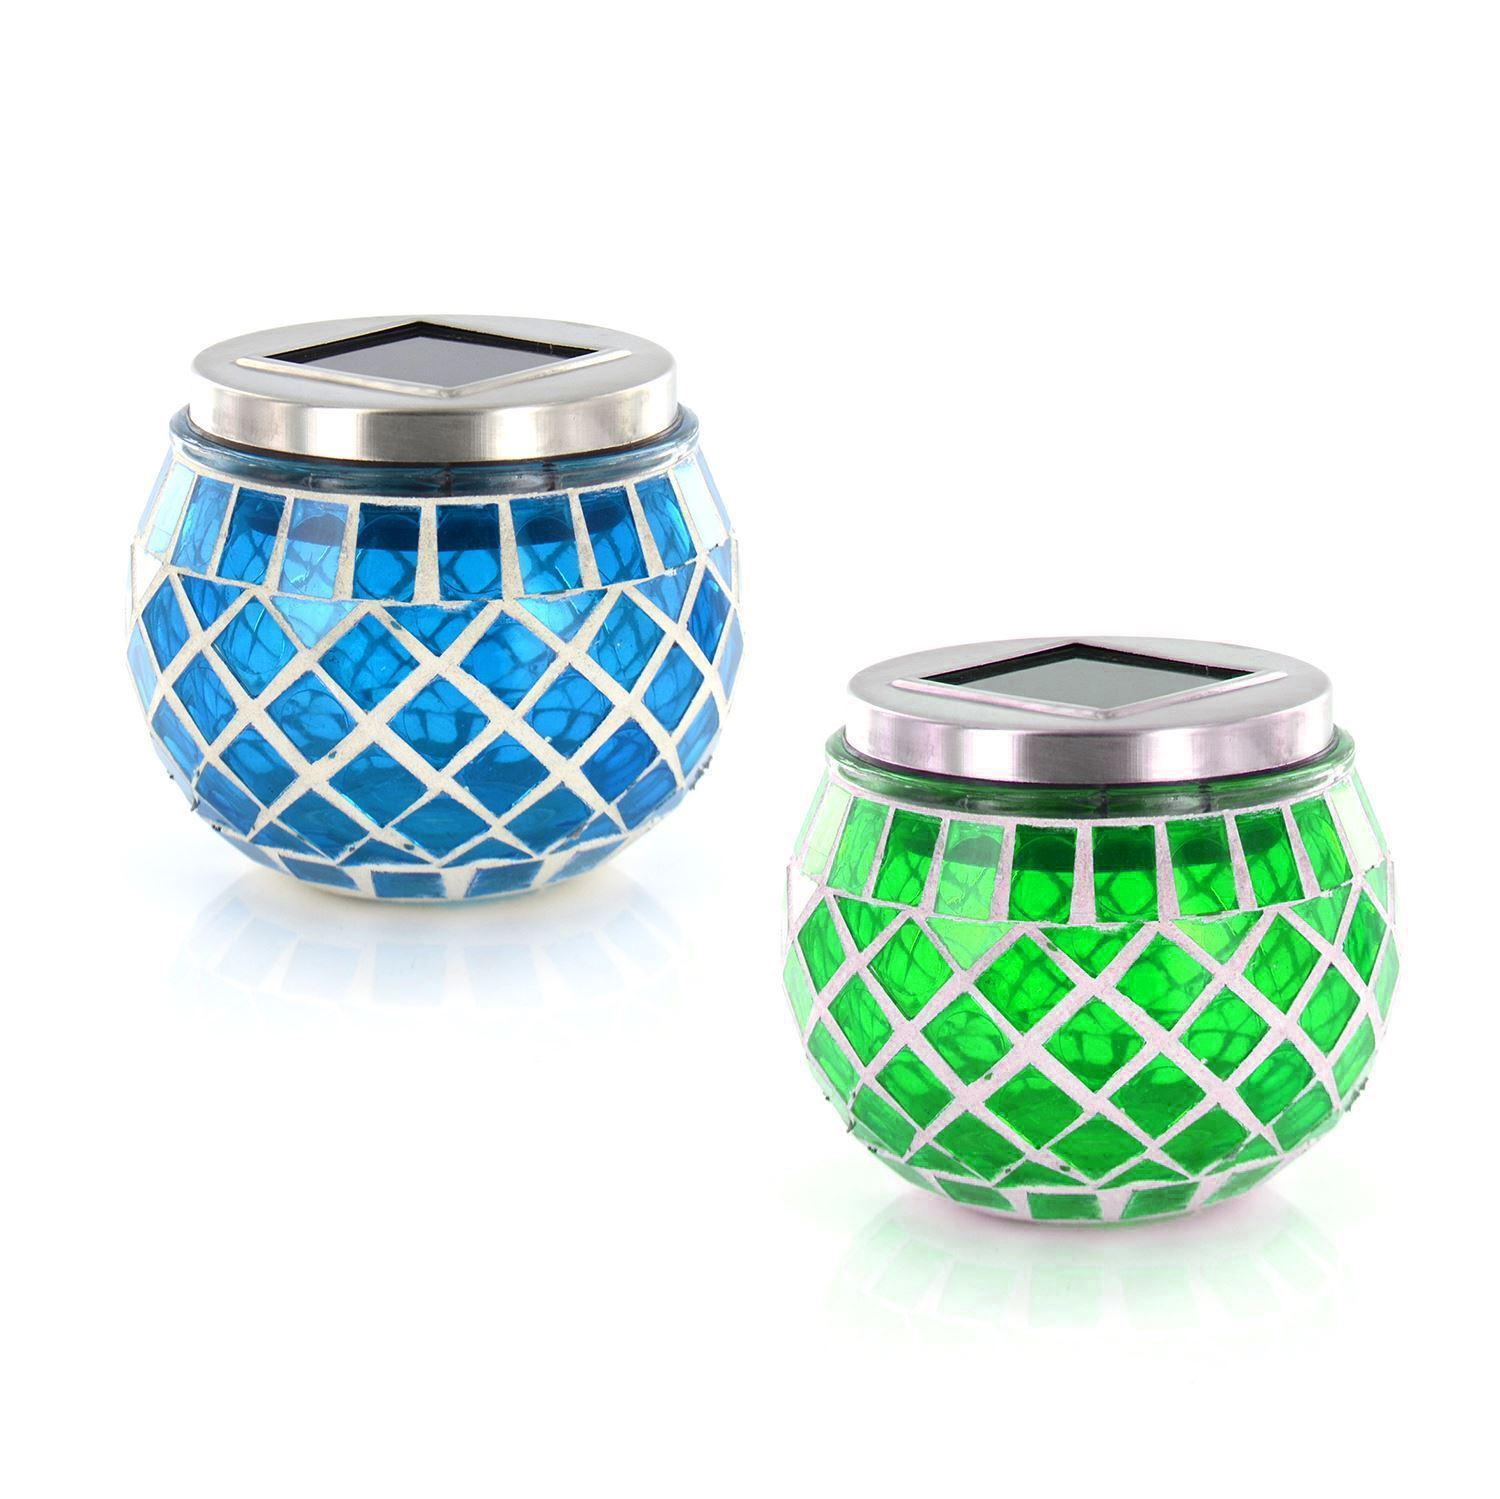 Patio Table Lights Uk: New 4 X Solar Powered Rechargeable Round Garden Patio